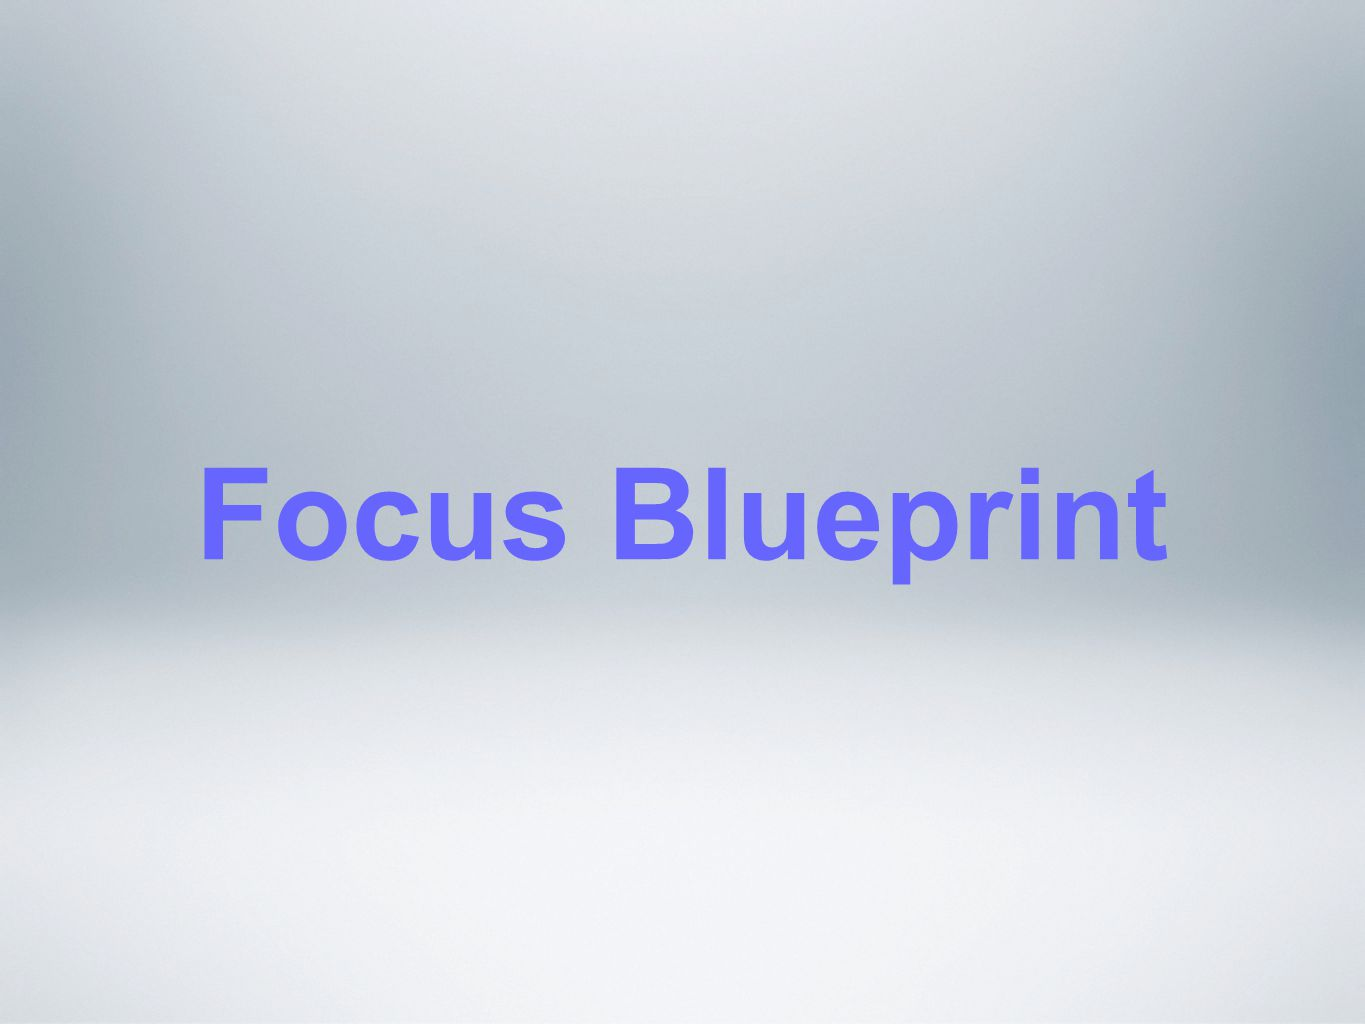 Focus Blueprint